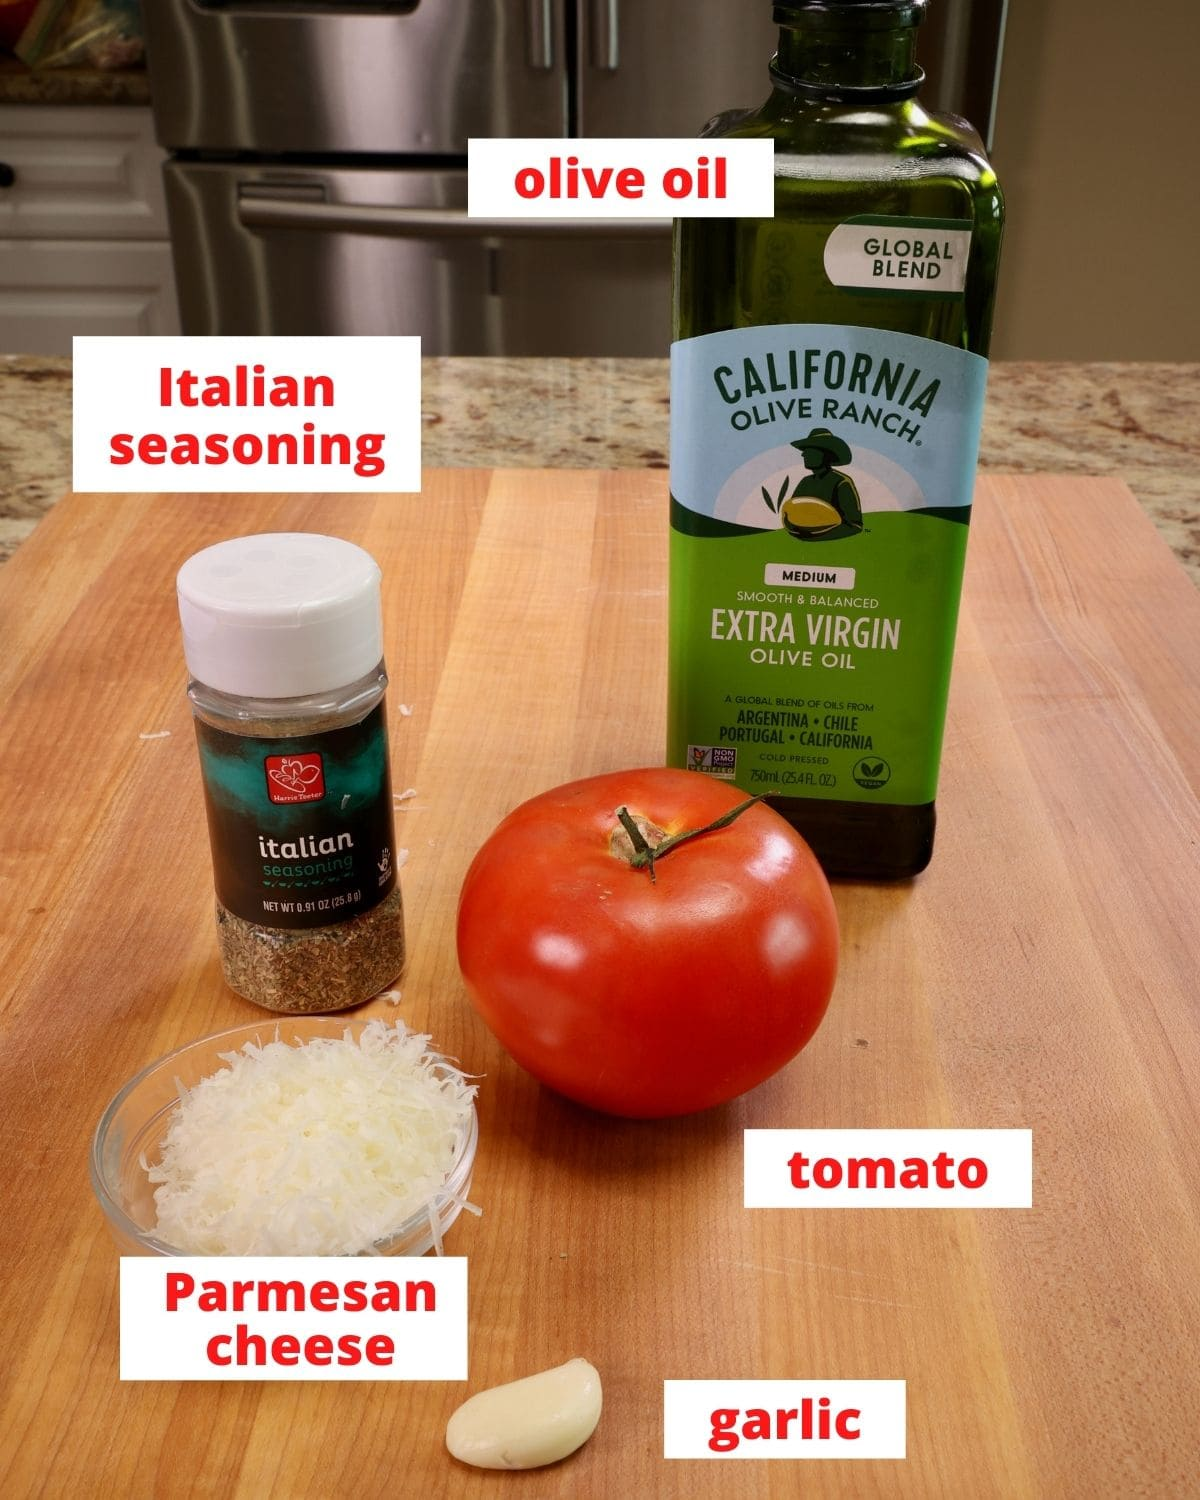 a tomato, olive oil, parmesan cheese, garlic, and italian seasoning on a wooden cutting board in a kitchen